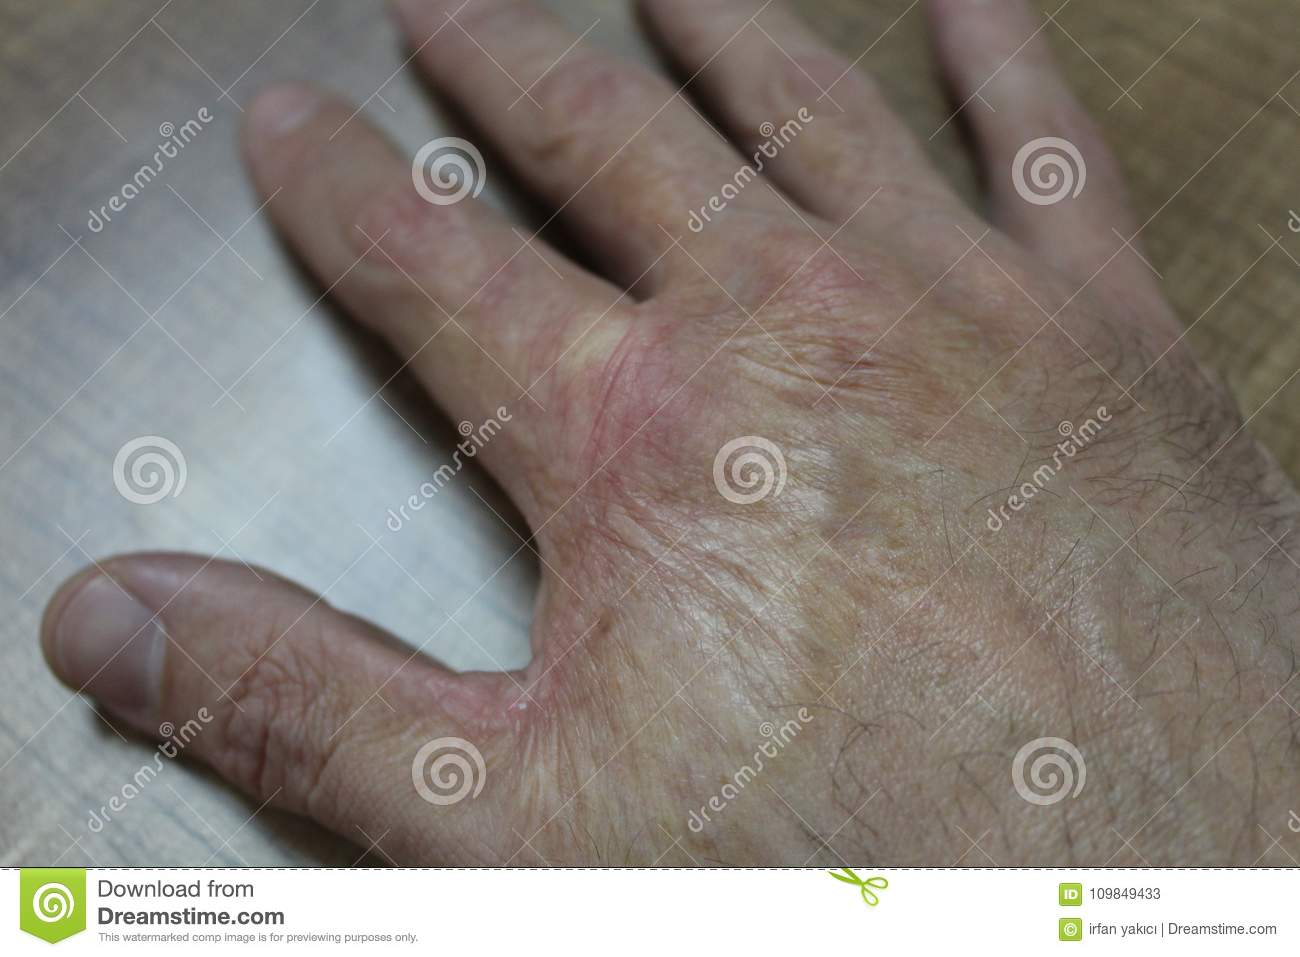 Burn scar stock image  Image of care, medicine, male - 109849433